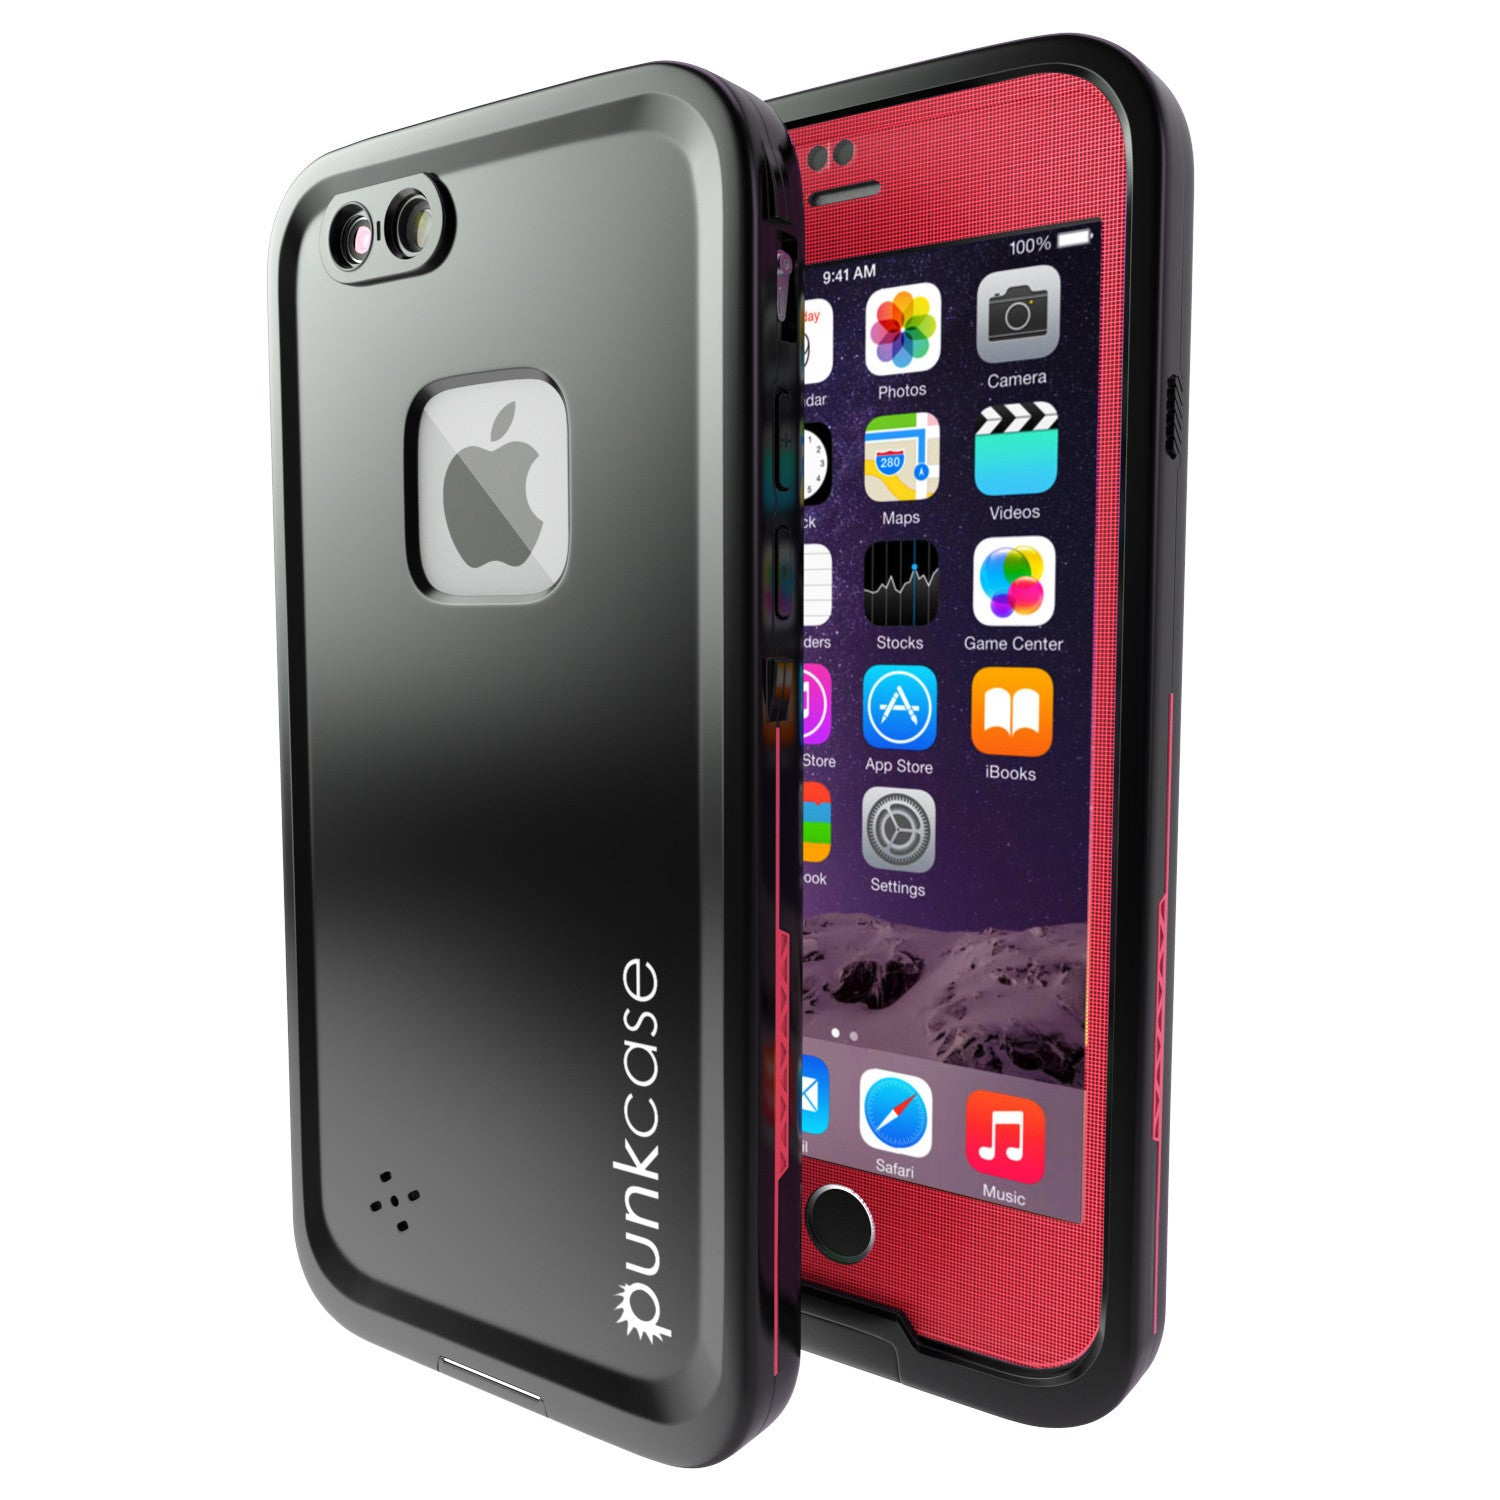 iPhone 6S+/6+ Plus Waterproof Case, Punkcase SpikeStar Red Thin Fit 6.6ft Underwater IP68 | Warranty